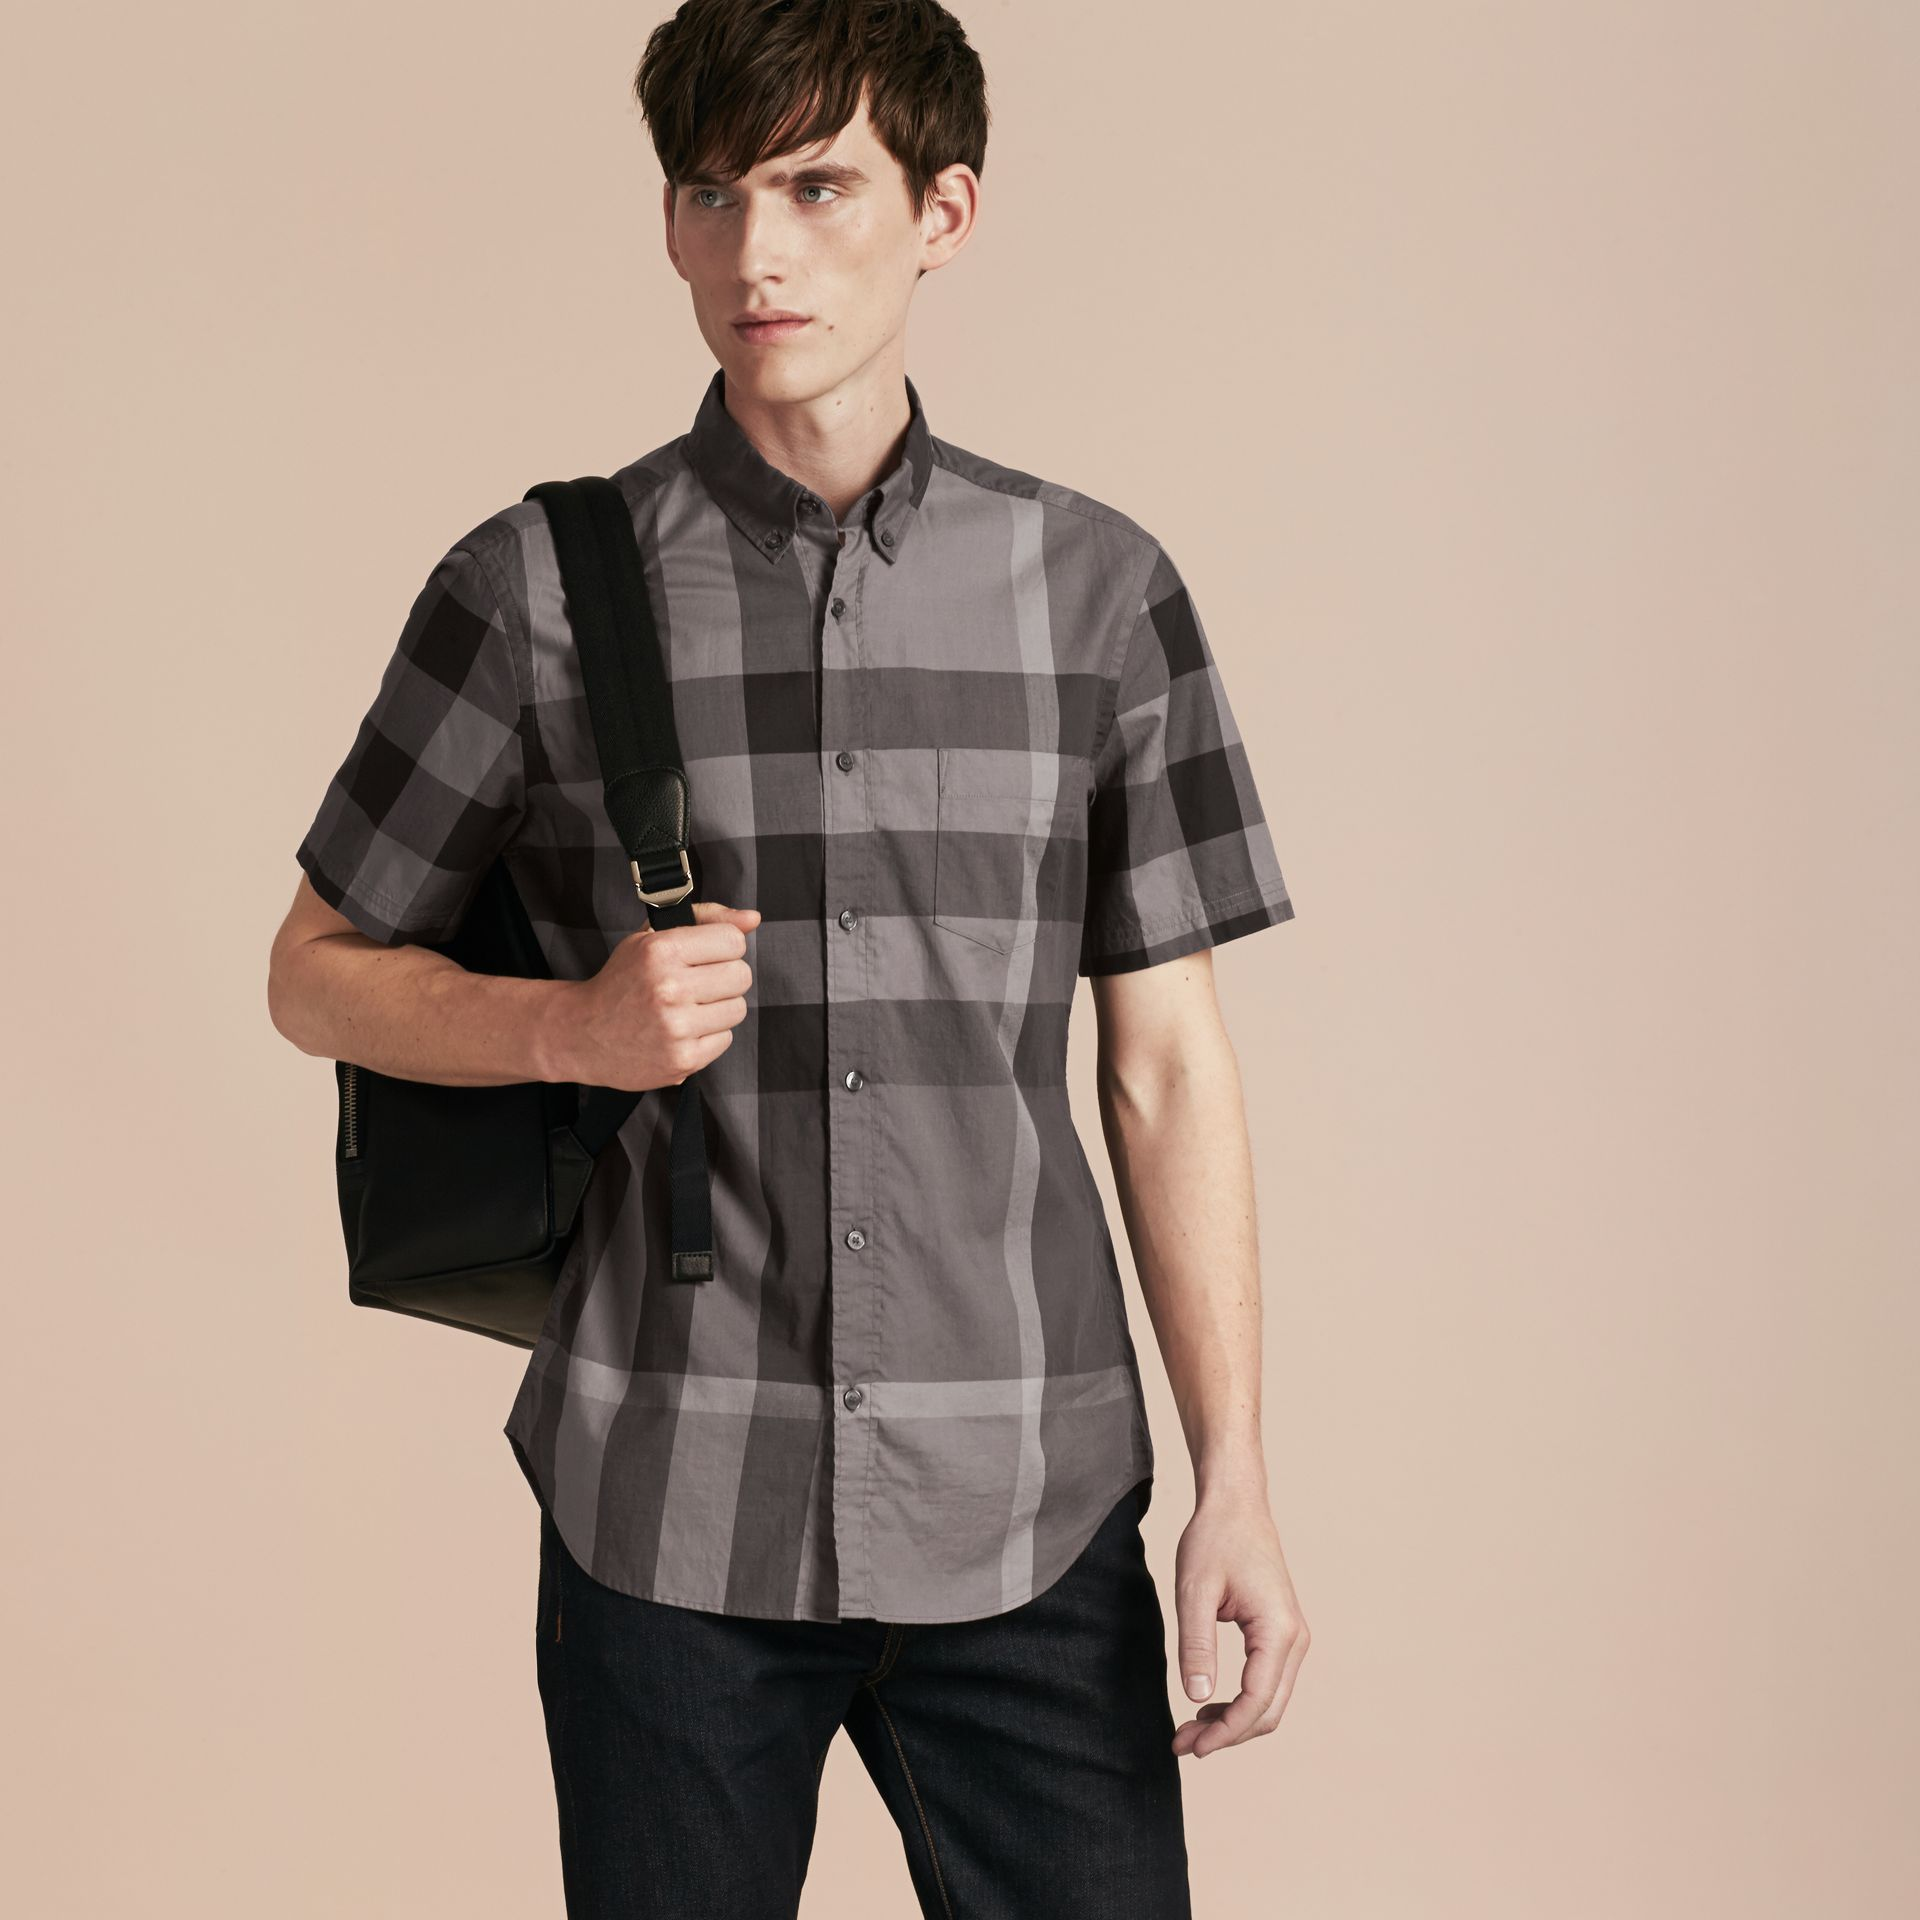 Charcoal Short-sleeved Check Cotton Shirt Charcoal - gallery image 1